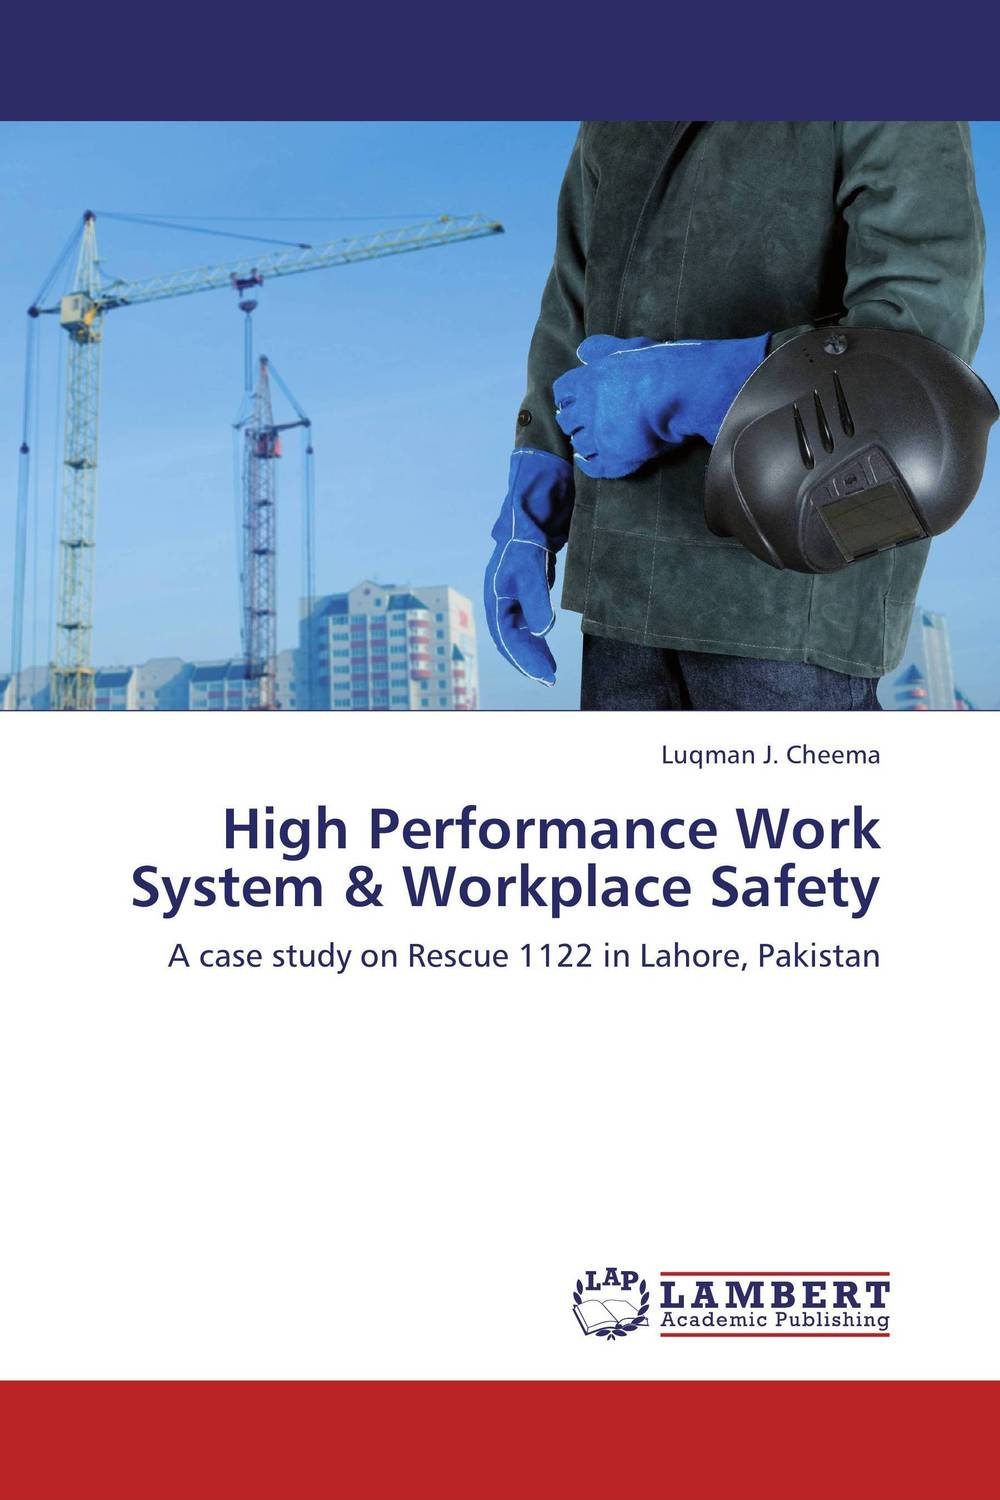 High Performance Work System & Workplace Safety high performance new safety switch for toyota collola 84540 52010 8454052010